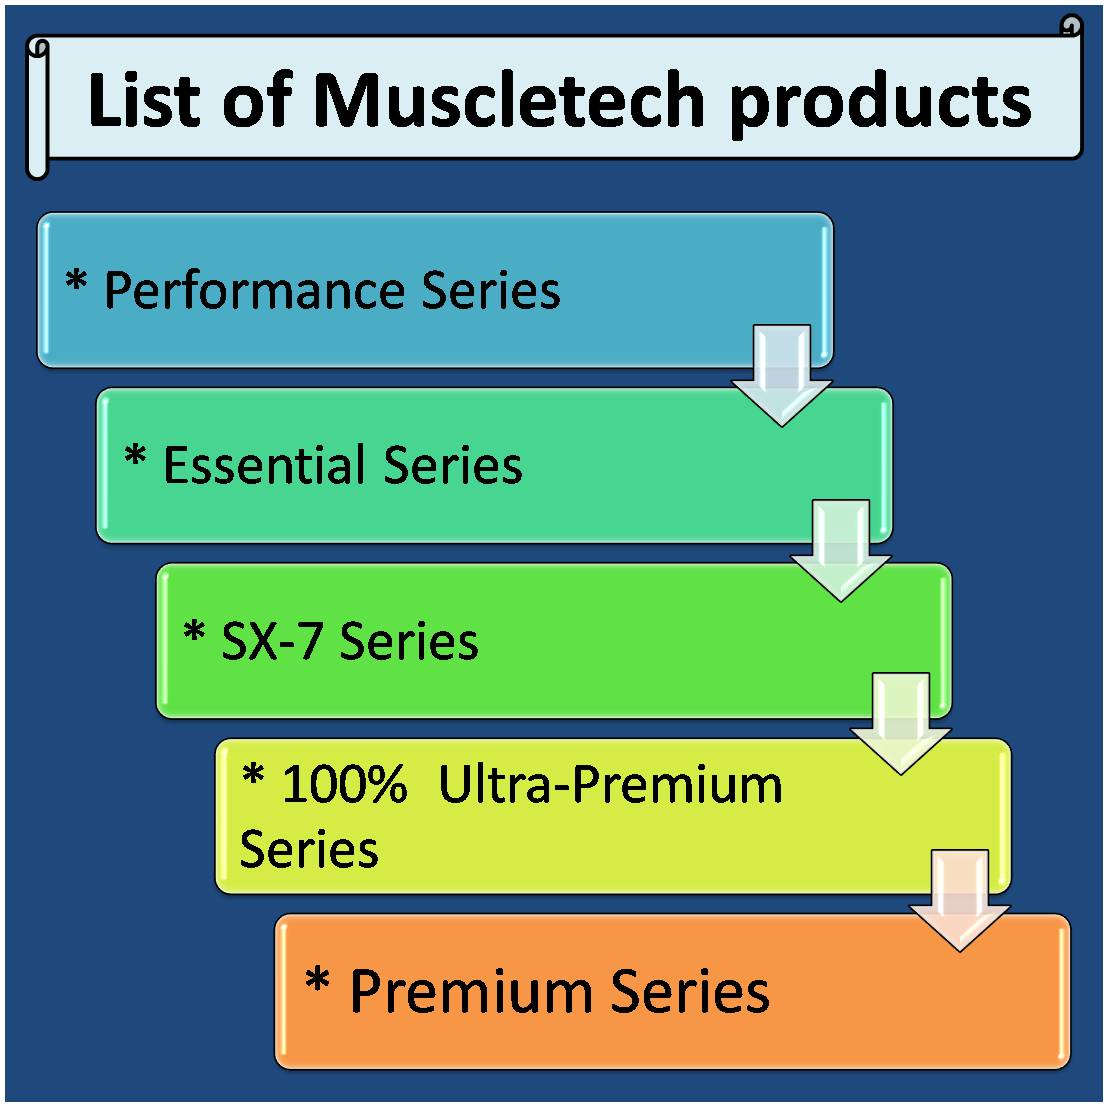 List of Muscletech products